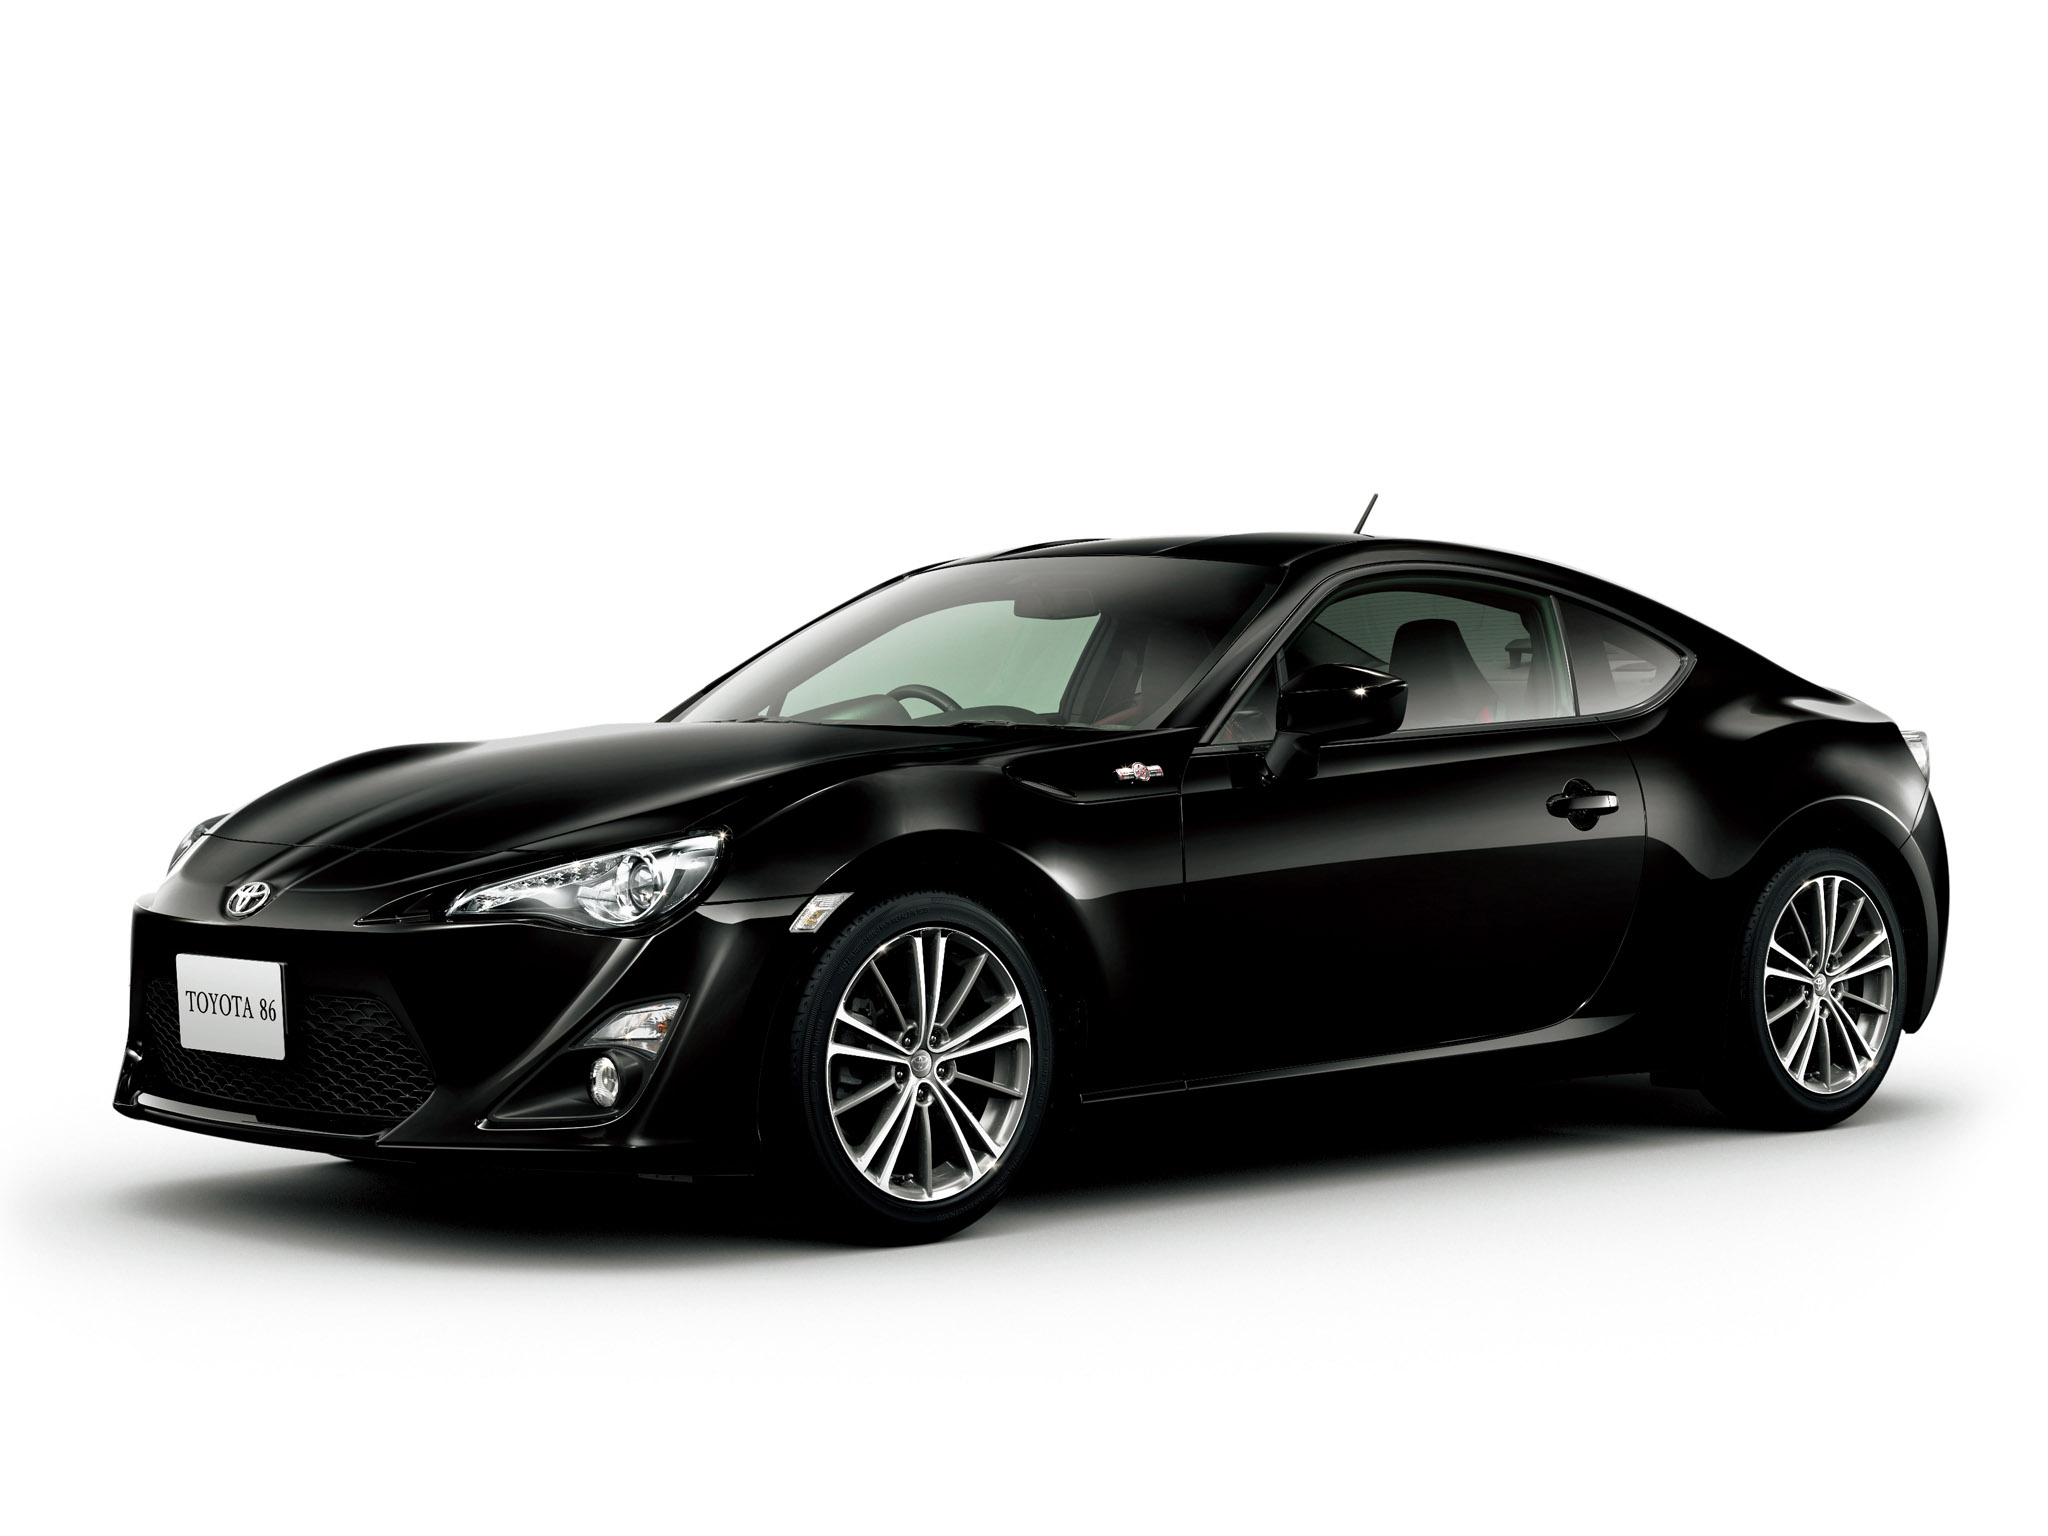 toyota 86 gt 2012 toyota 86 gt 2012 photo 09 car in. Black Bedroom Furniture Sets. Home Design Ideas